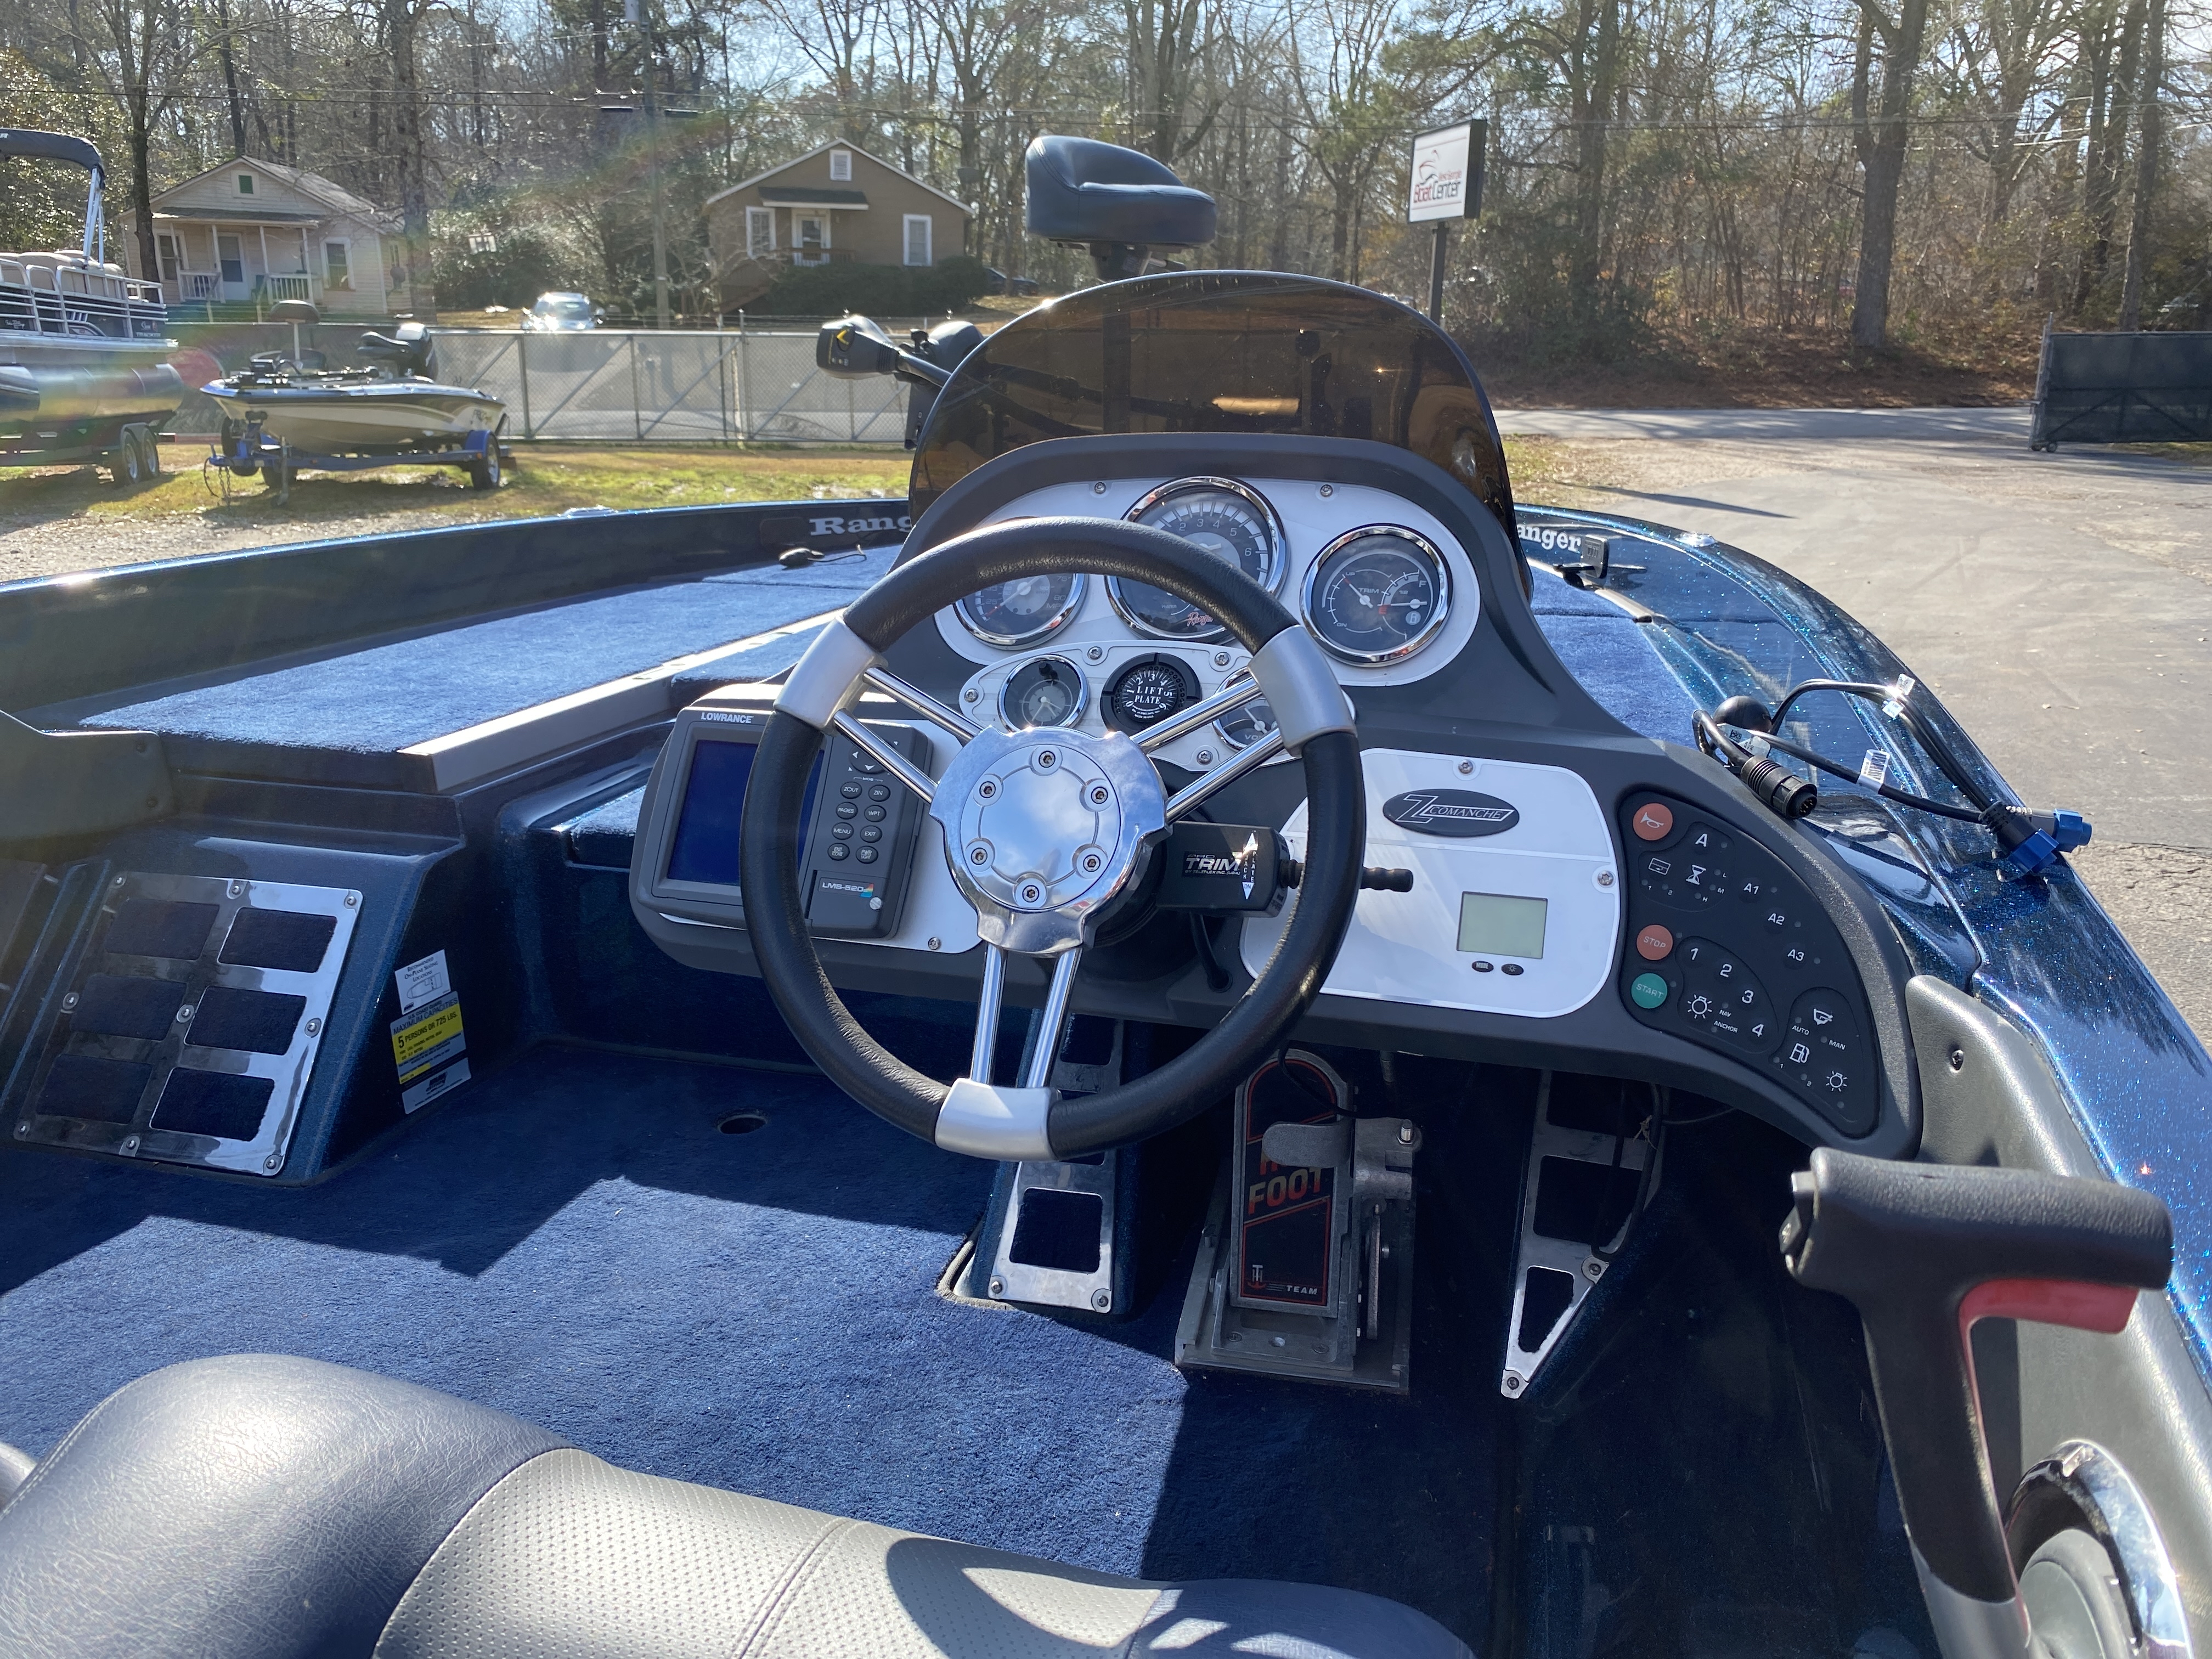 2006 Ranger Boats boat for sale, model of the boat is Z19 w/225hp & Image # 28 of 28